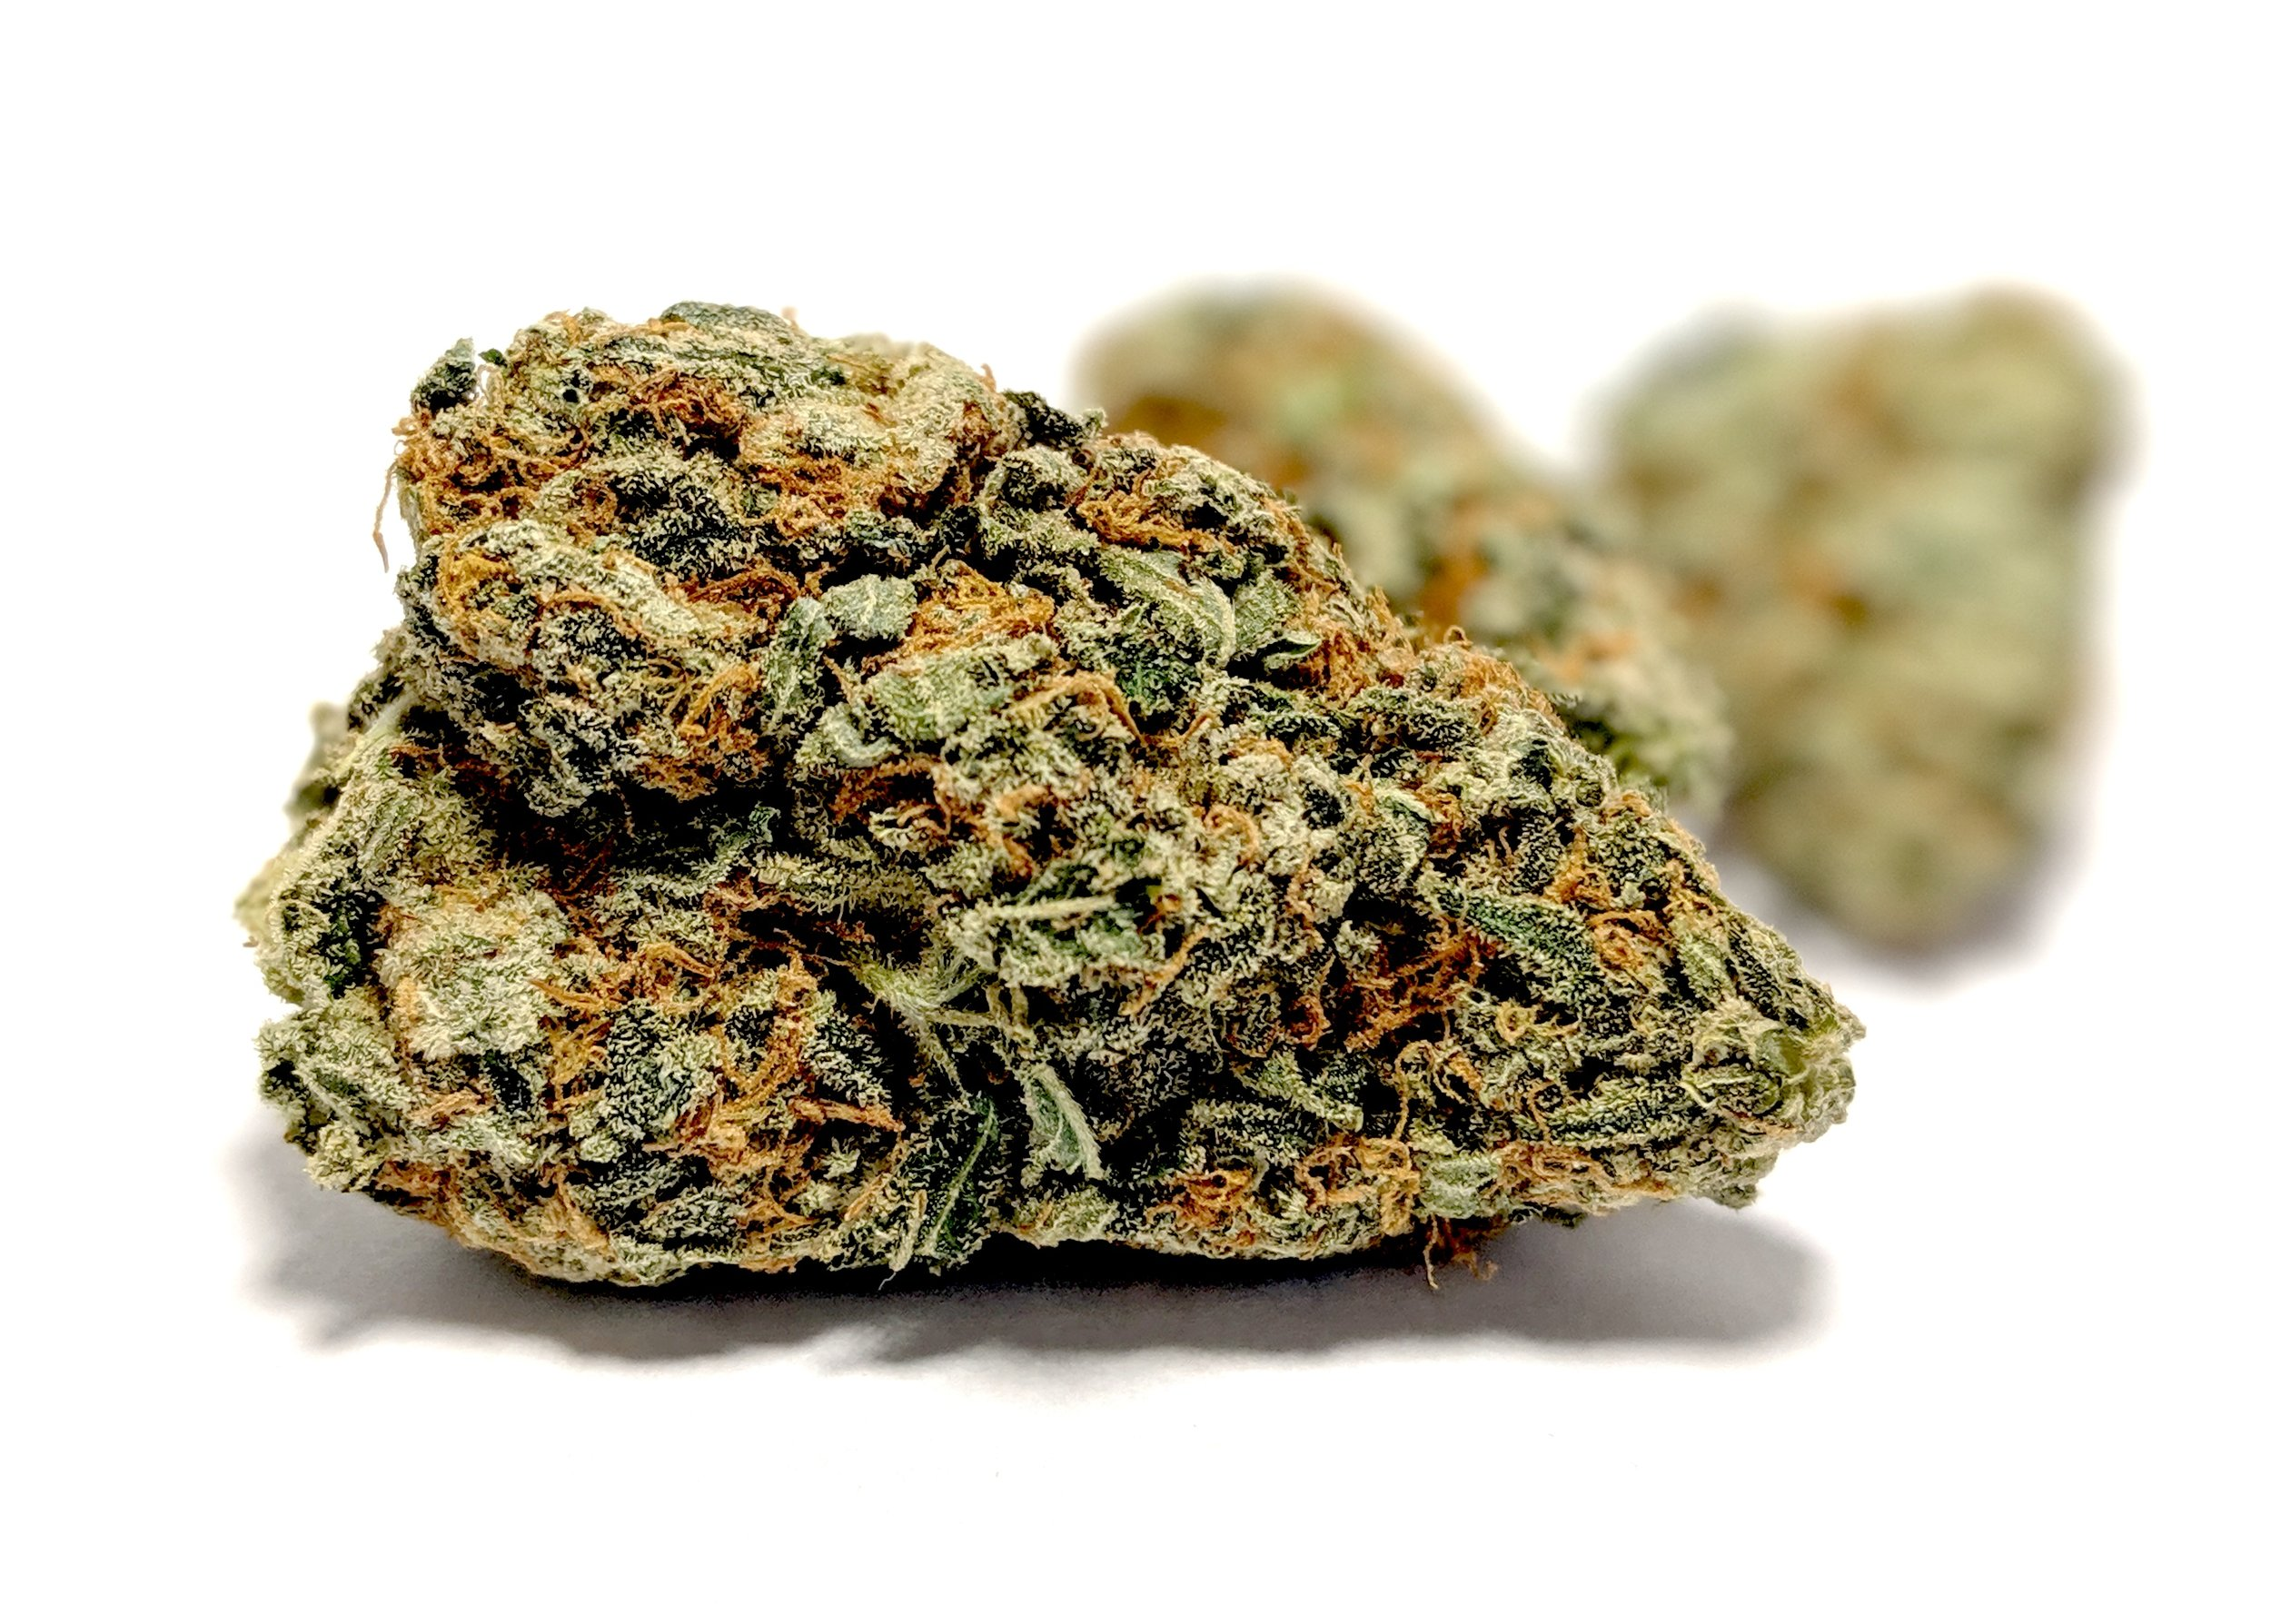 Krazy Glue - Hybrid    1/4- $65 1/2-$110 OZ-$200   Despite its name, this sativa dominant strain wont leave you stuck to the couch at all! This hybrid carries a lot of traits from its Gorilla Glue parent, including similar appearance and flavor profile. This strain shines best when high potency is needed without the heavy feeling of an Indica. This strain has been known to help alleviate the following symptoms: Pain, Anxiety, Stress, Fatigue, Insomnia, Nausea, Appetite, and Depression